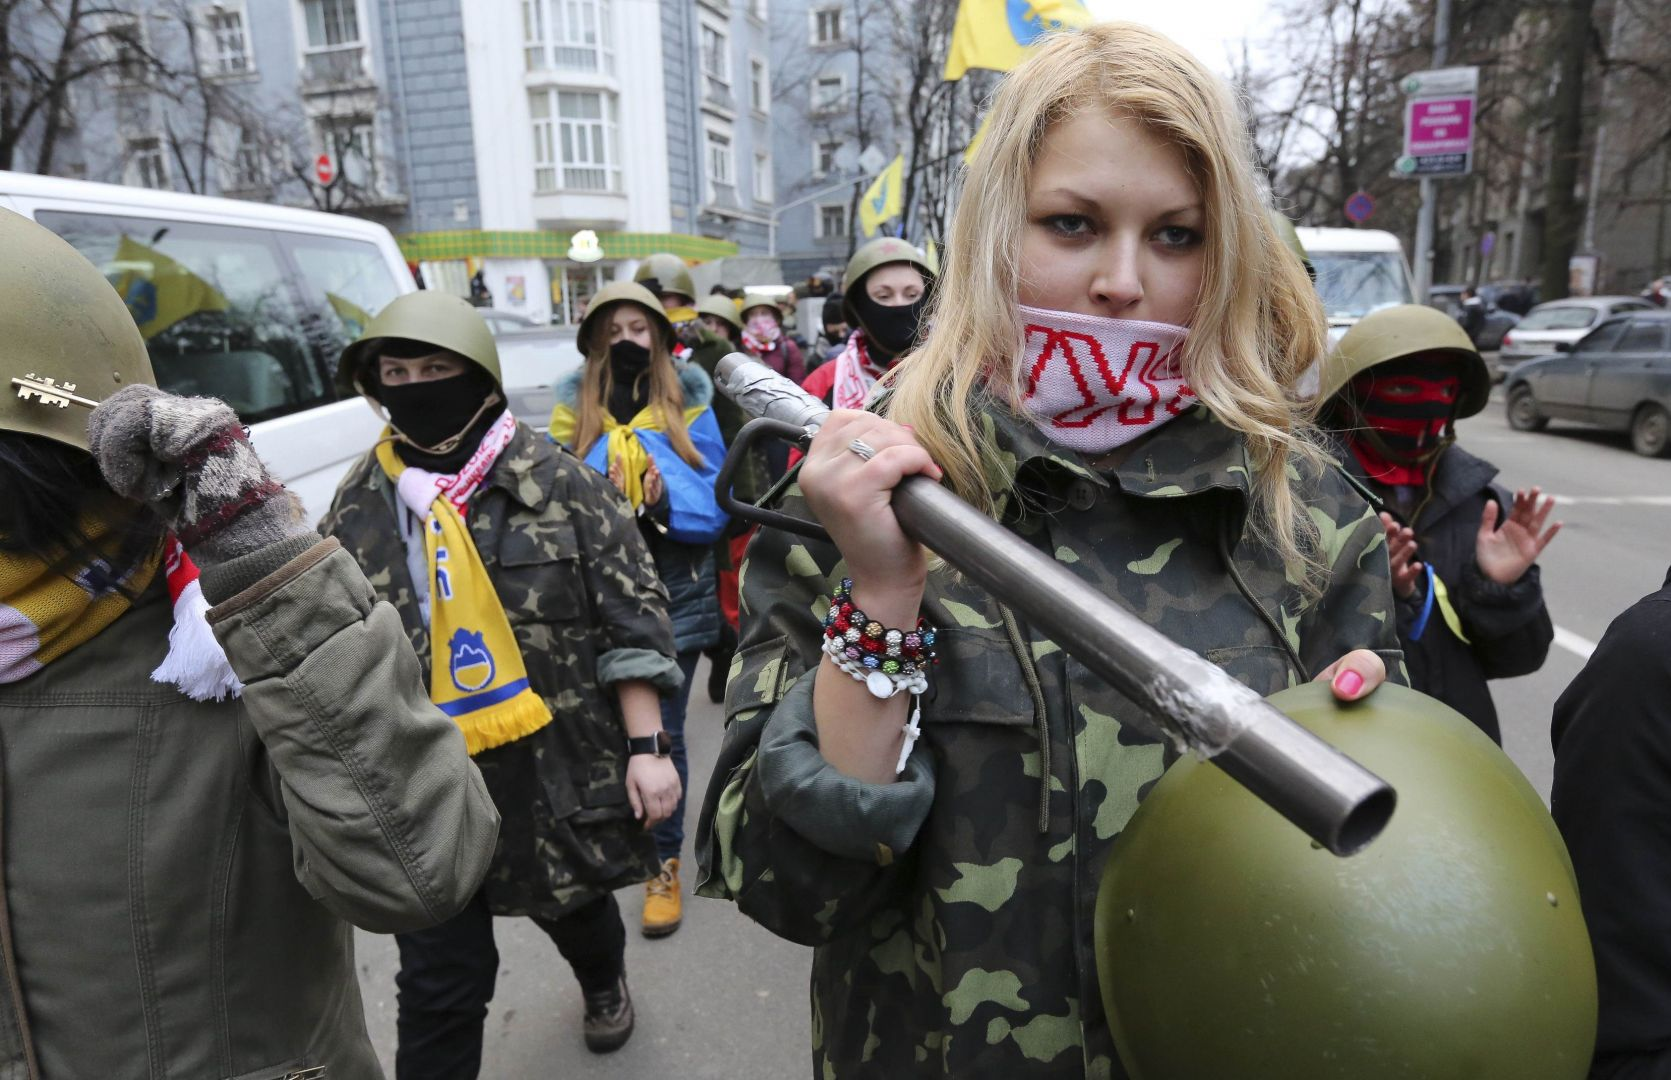 A New Cold War? Ukraine Violence Escalates, Leaked Tape ...